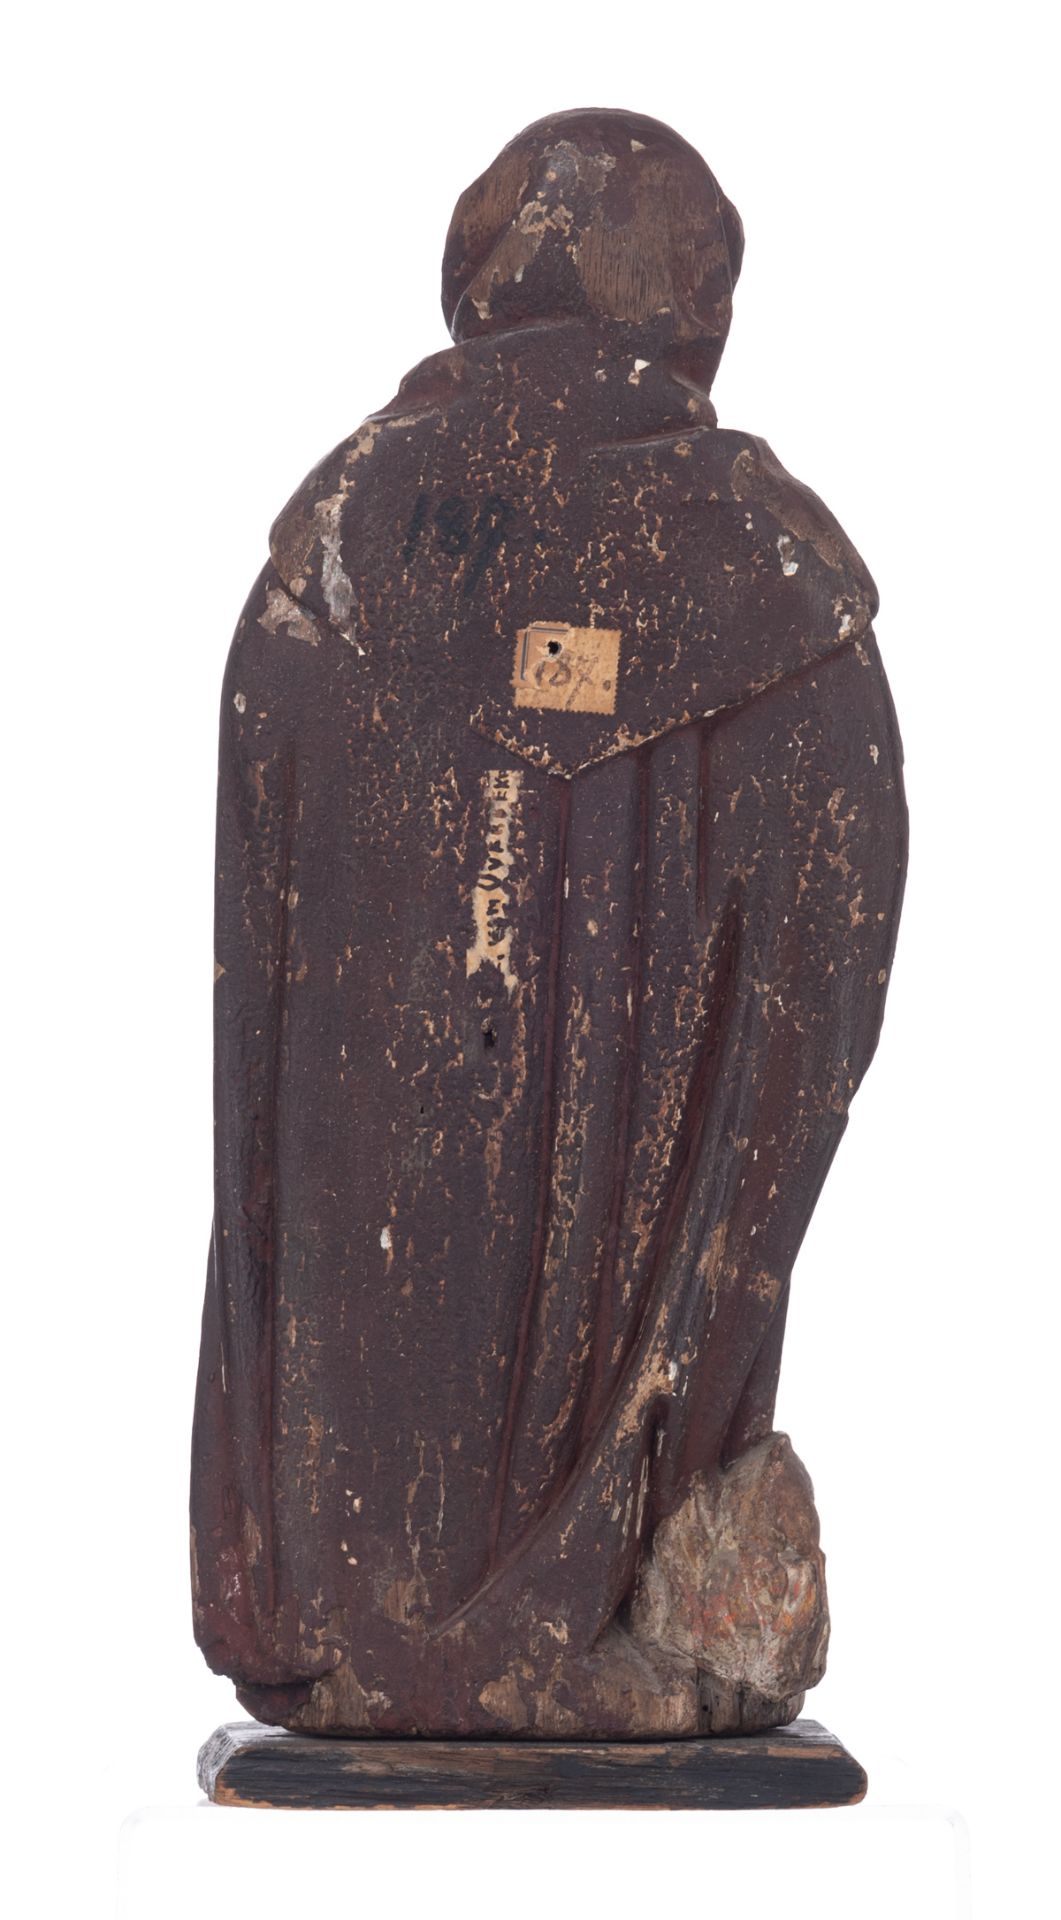 Los 473 - Saint Anthony Abbott, a 17htC oak sculpture with traces of polychrome paint, Southern Netherlands, H